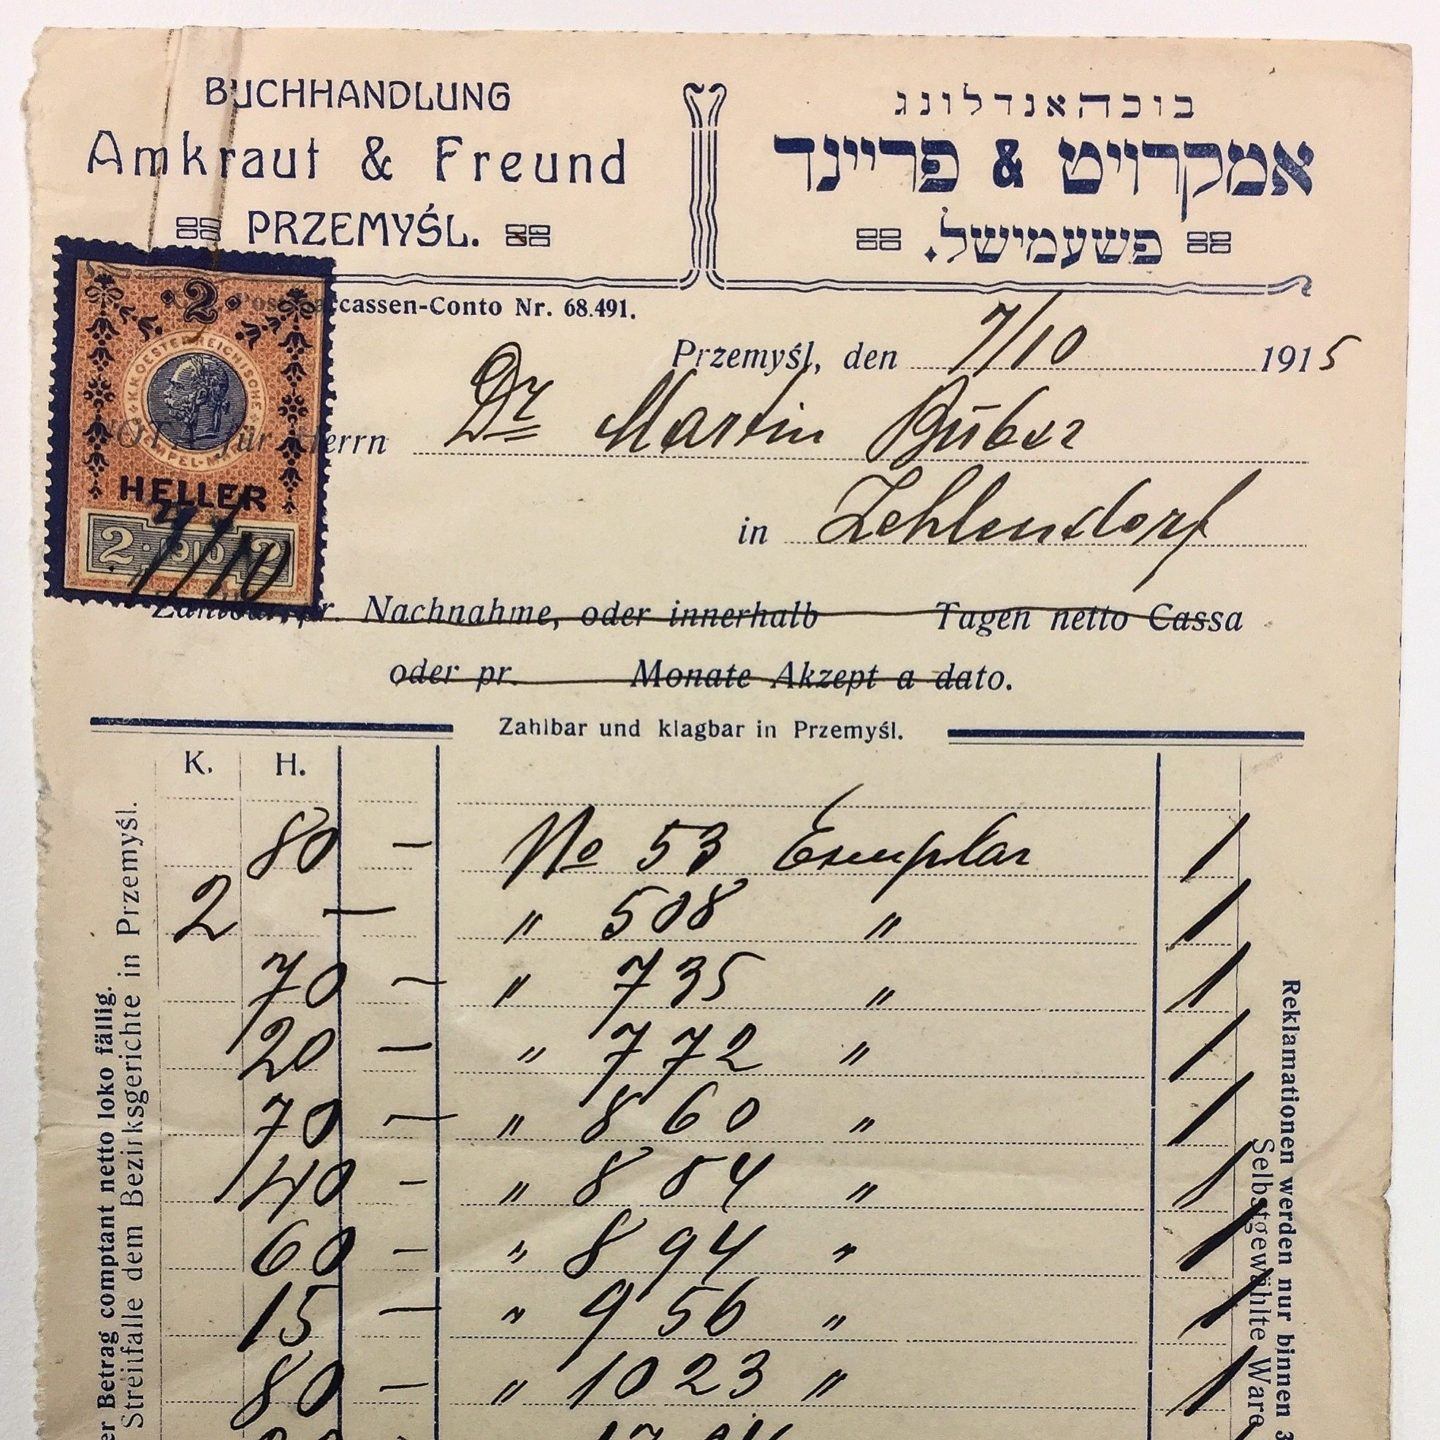 "<p><em>A receipt issued to Martin Buber in October 1915 for his purchase of thirty-three Hasidic volumes from Amkraut <span class=""amp"">&amp;</span> Freund, a Yiddish/Hebrew bookshop in Przemyśl, Galicia. Source: National Library of Israel, Martin Buber Archives, <span class=""caps"">ARC</span>. Ms. Var. 350 04&nbsp;47</em></p>"